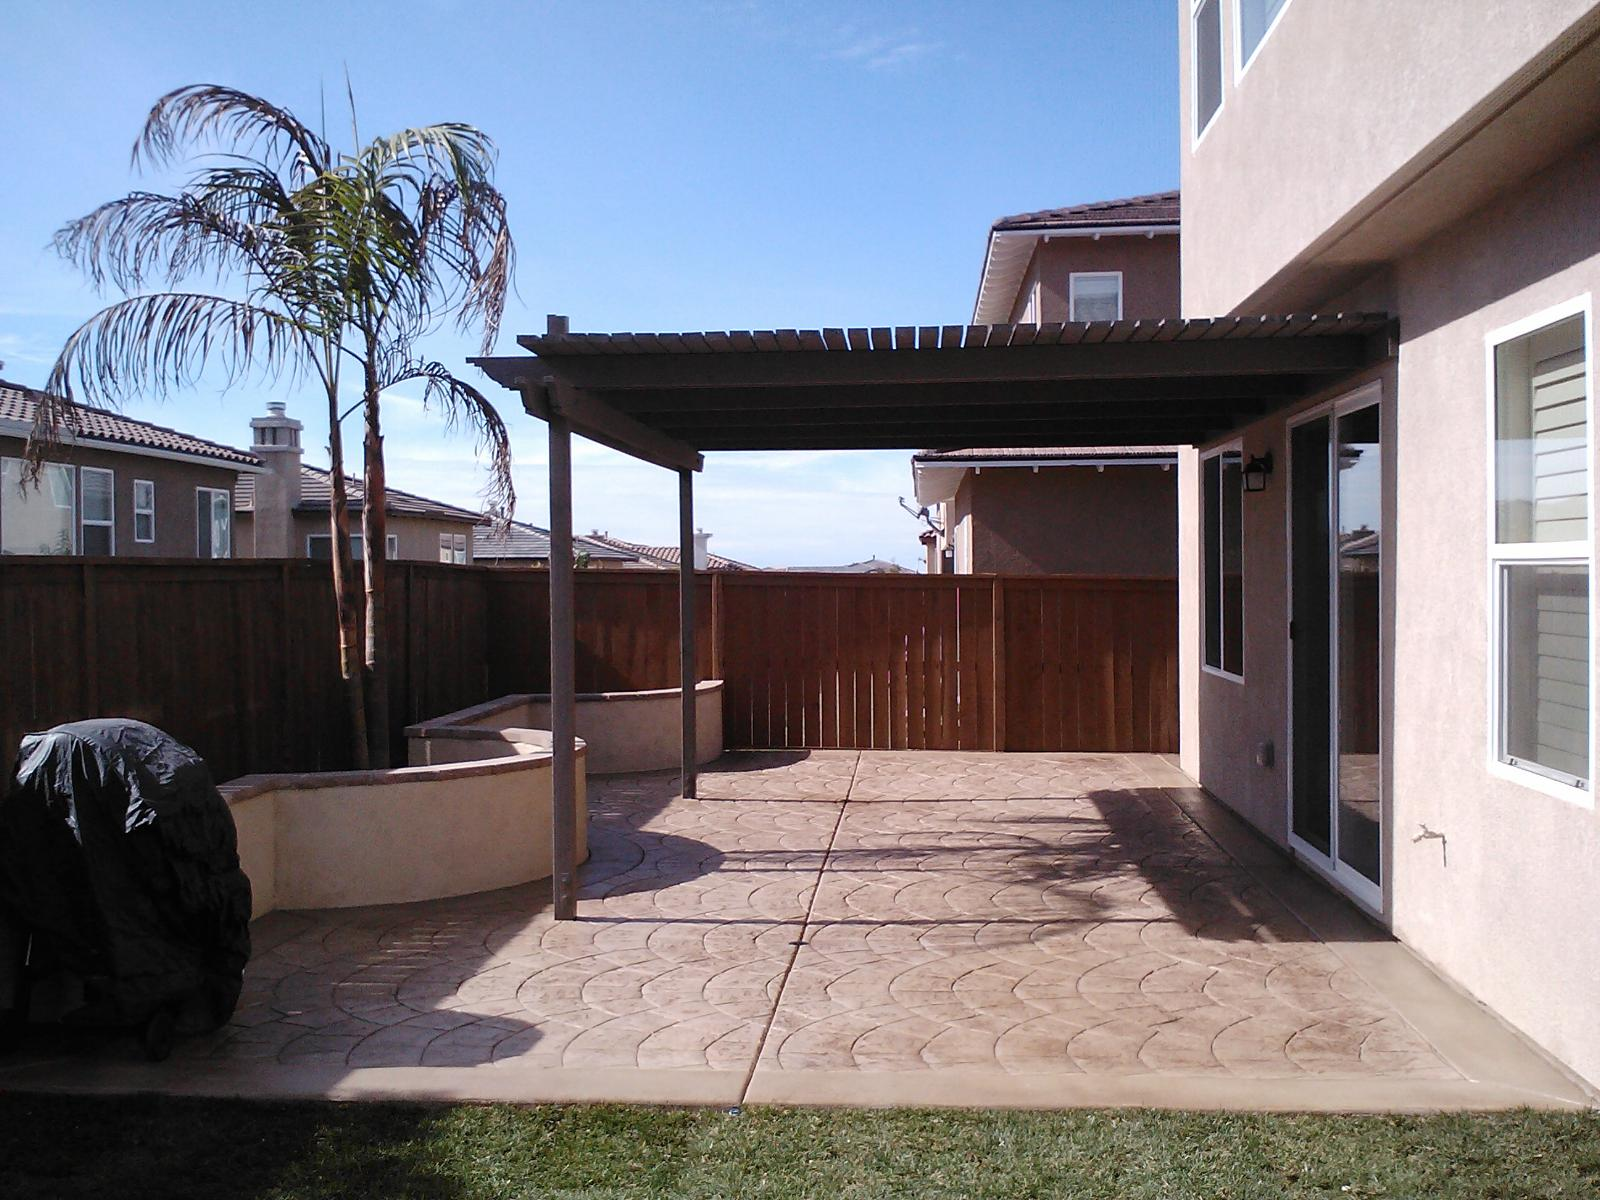 Stamped Patio Concrete Contractor Carlsbad, Decorative Concrete Patio Contractors